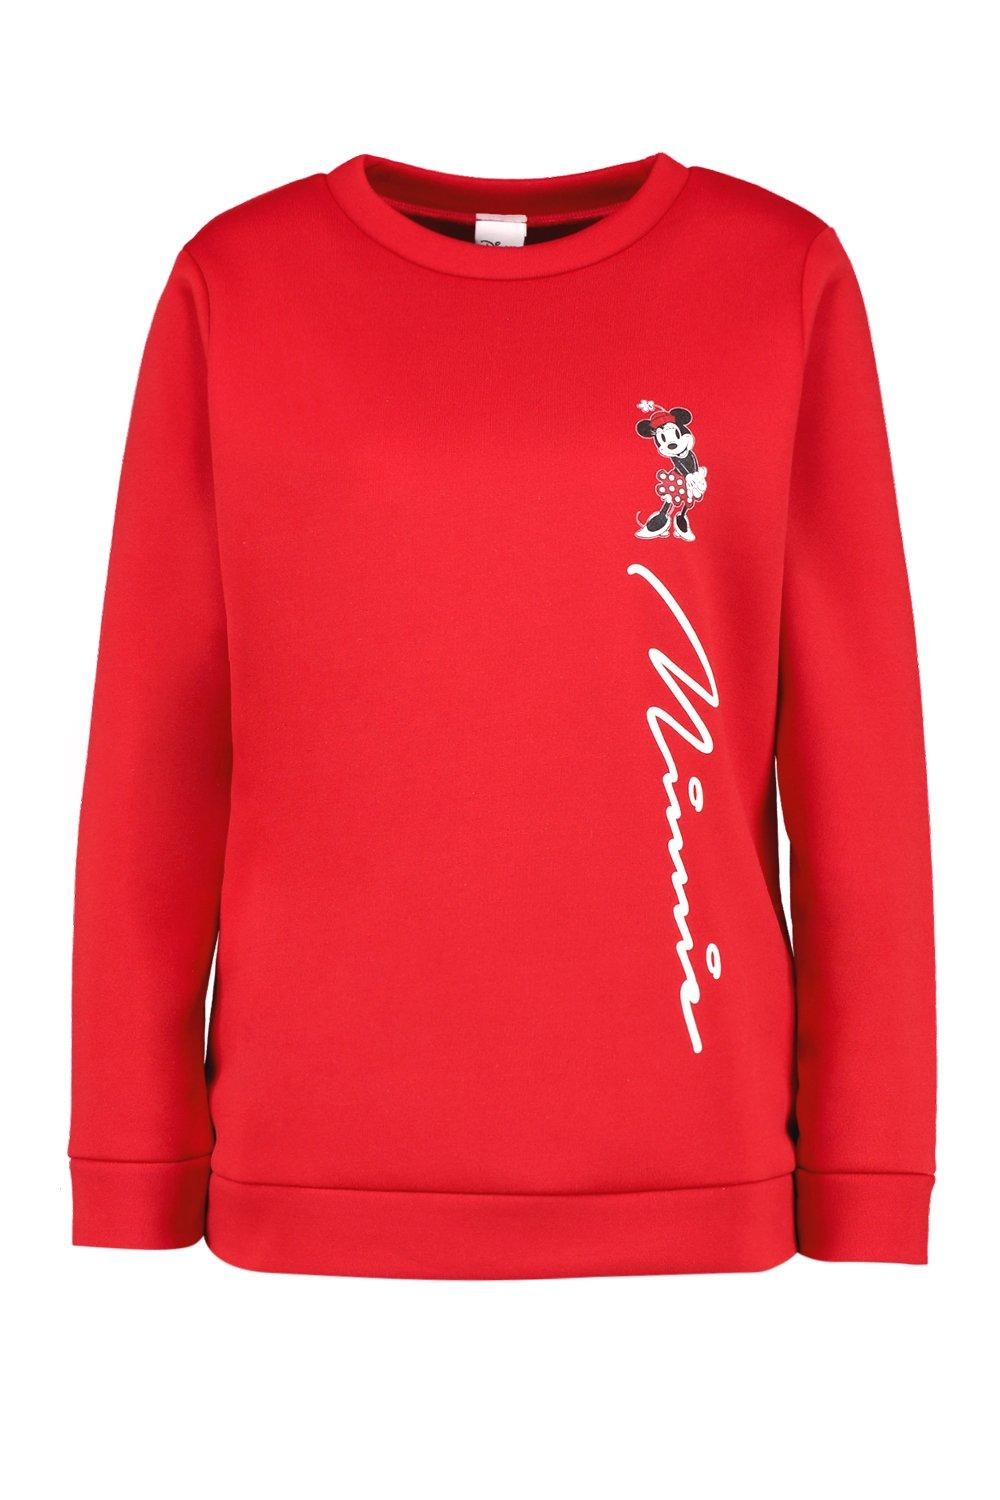 Minnie Crew red Script Sweater Disney Neck OEqxdCwO0